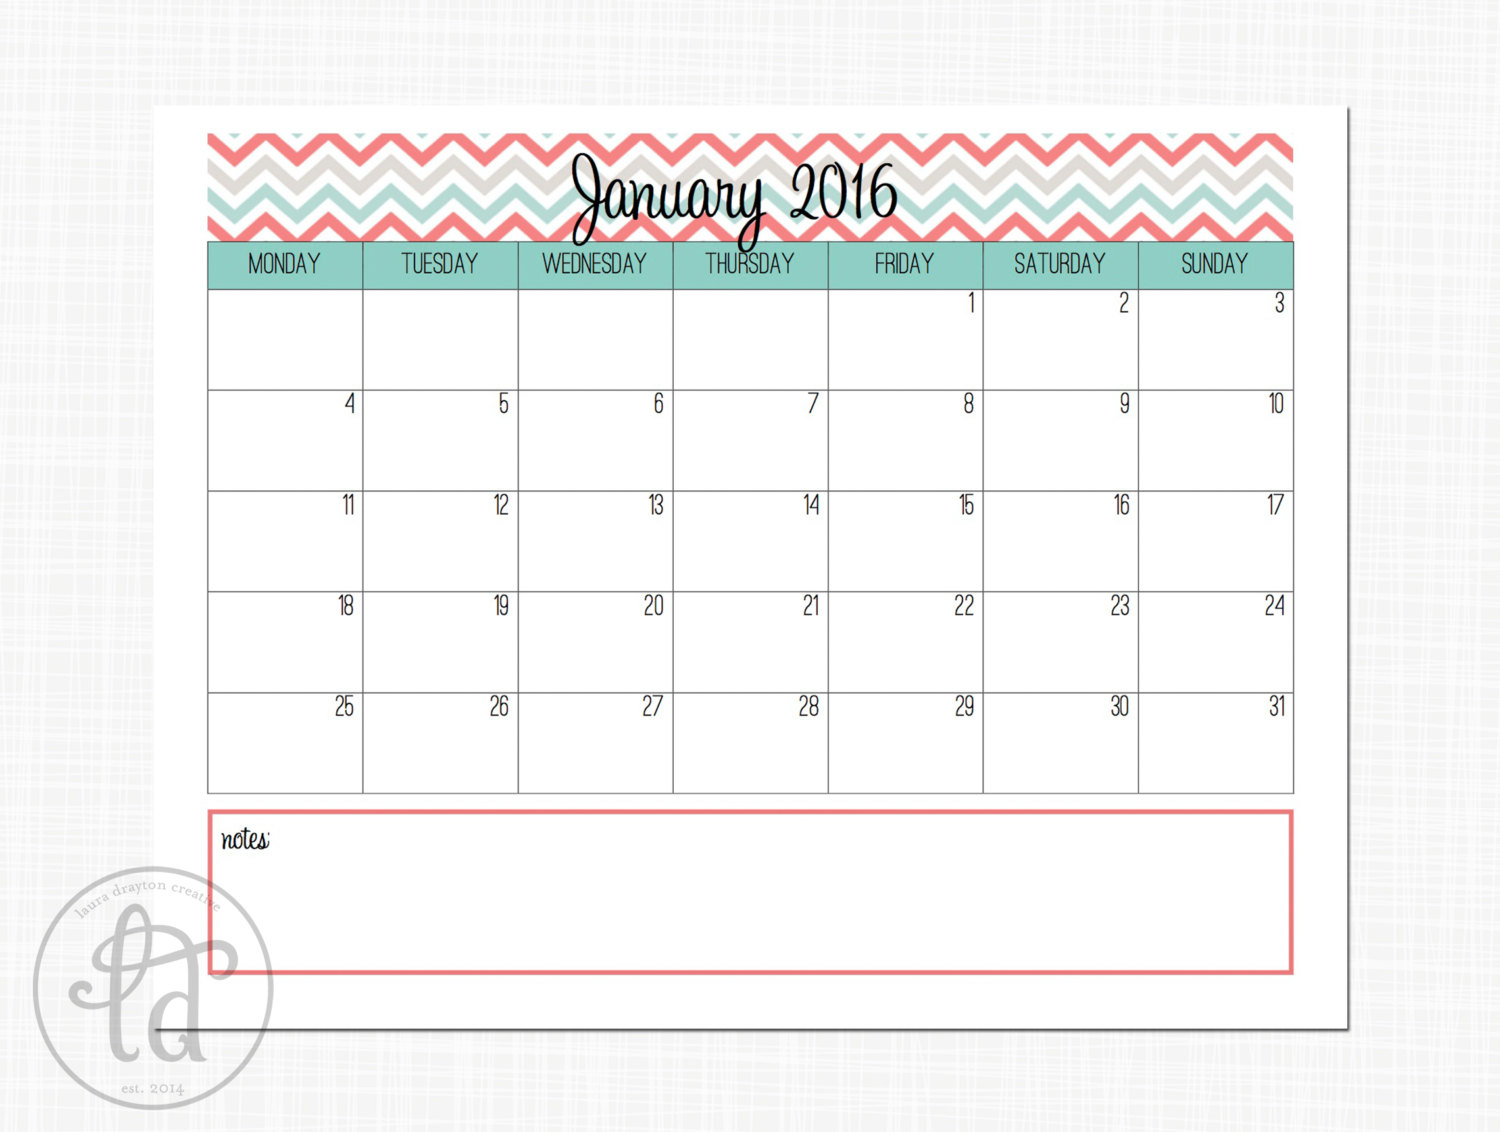 9 Images of Cute Printable January Coloring Calendar 2016